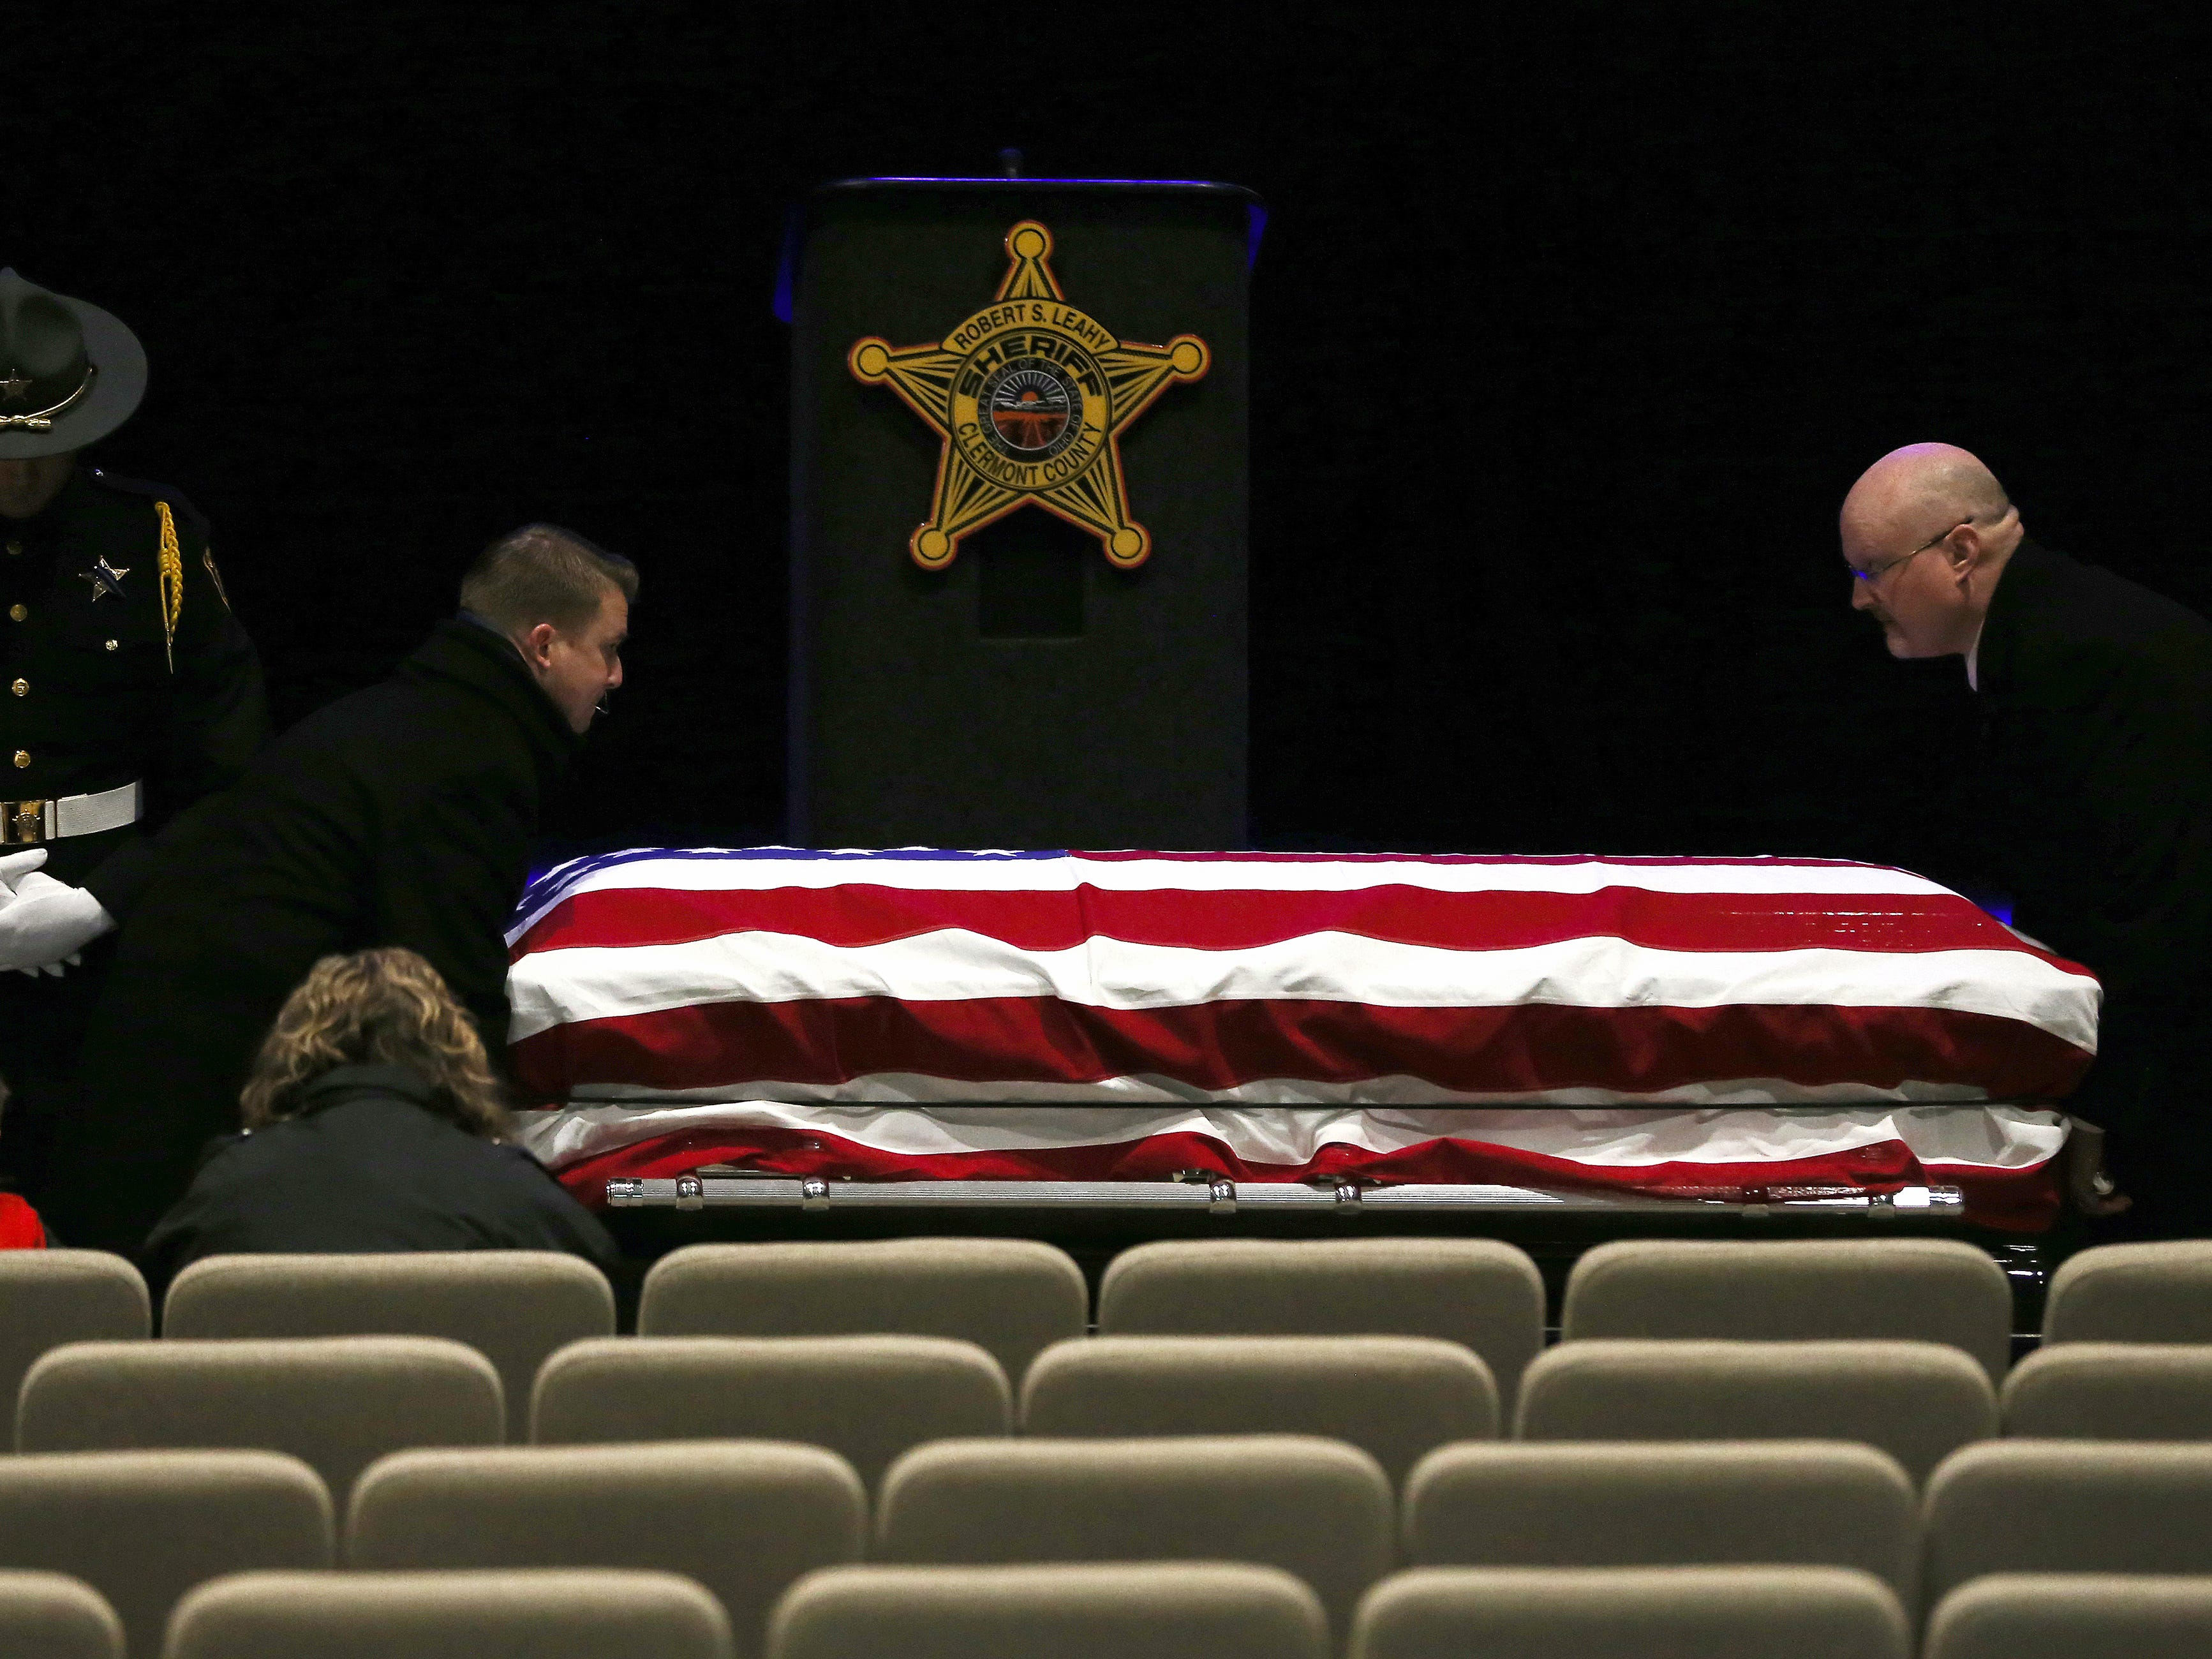 The casket of Clermont County Sheriff's Detective William Lee Brewer Jr. is placed as his son, Braxton, 5, and wife, Jamie, sit in attendance ahead of funeral services, Friday, Feb. 8, 2019, at Mount Carmel Christian Church in Union Township, Ohio. Brewer, a 20-year veteran of the Clermont County Sheriff's Office, died in the line of duty. He was shot Feb. 2 during a standoff. Brewer, 42, of Pierce Township, is survived by his wife, Jamie, and a 5-year-old son, Braxton. (Kareem Elgazzar/The Cincinnati Enquirer)